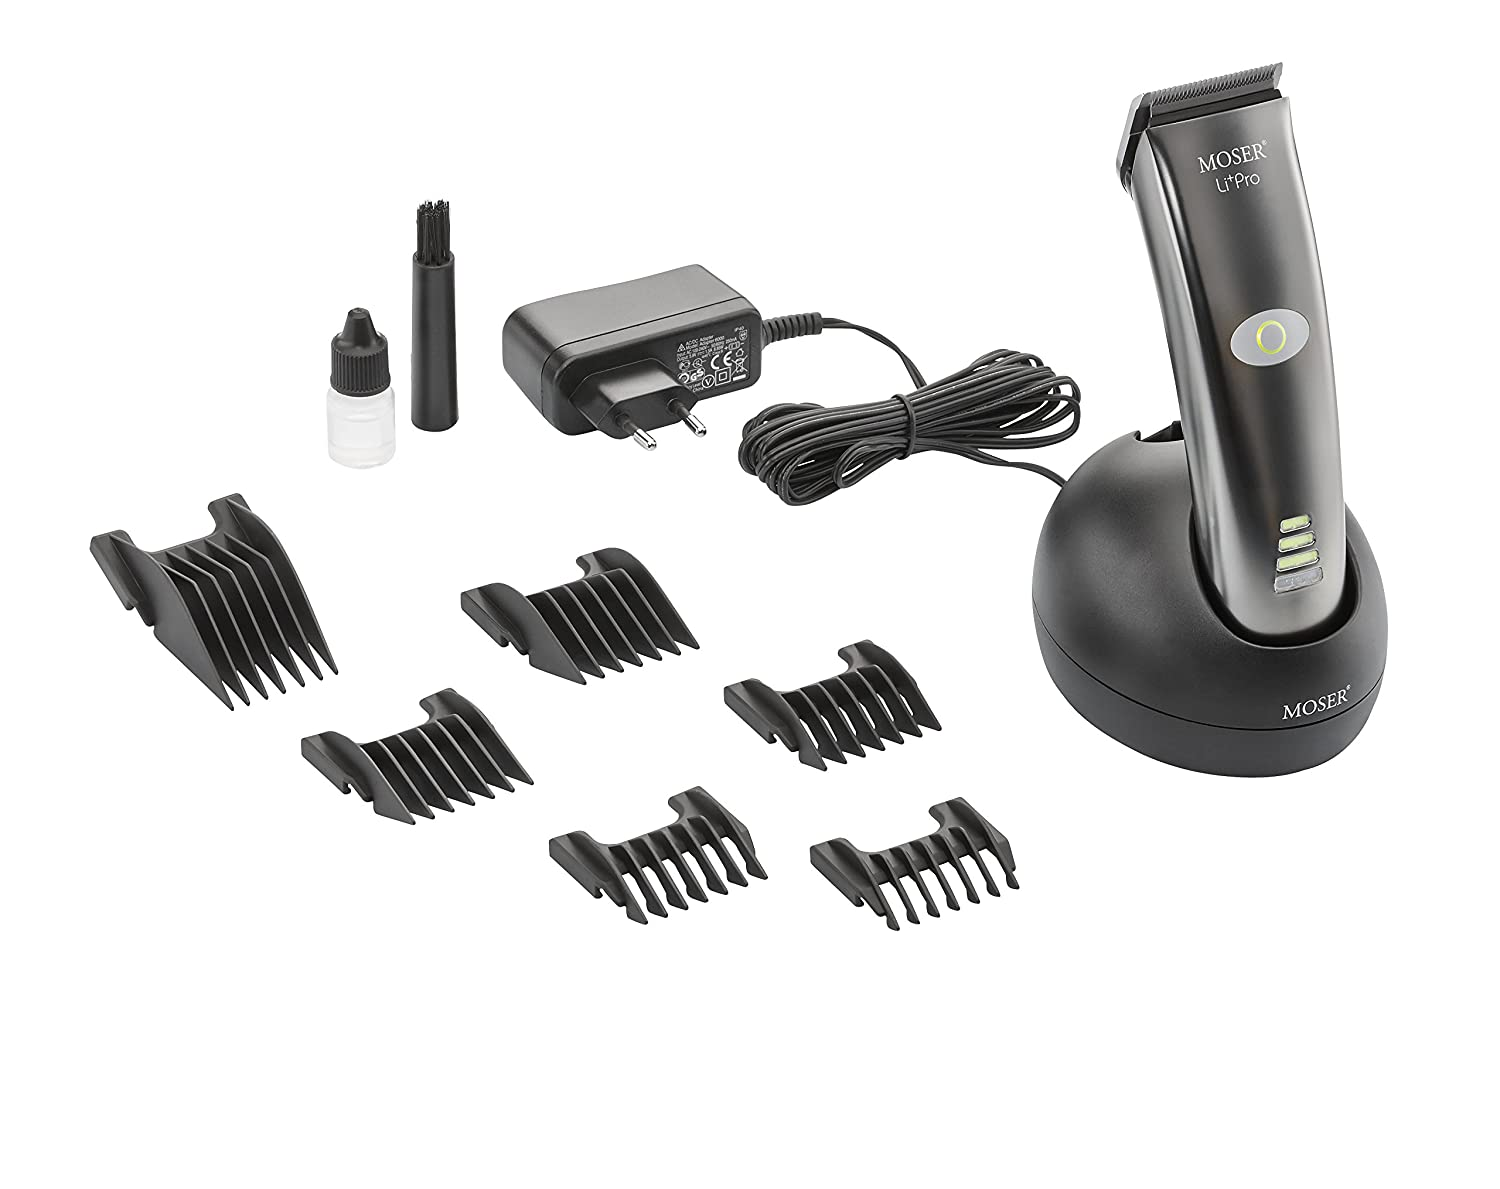 NEW MOSER LI+PRO 1884 Professional Hair Clipper Cord / Cordless